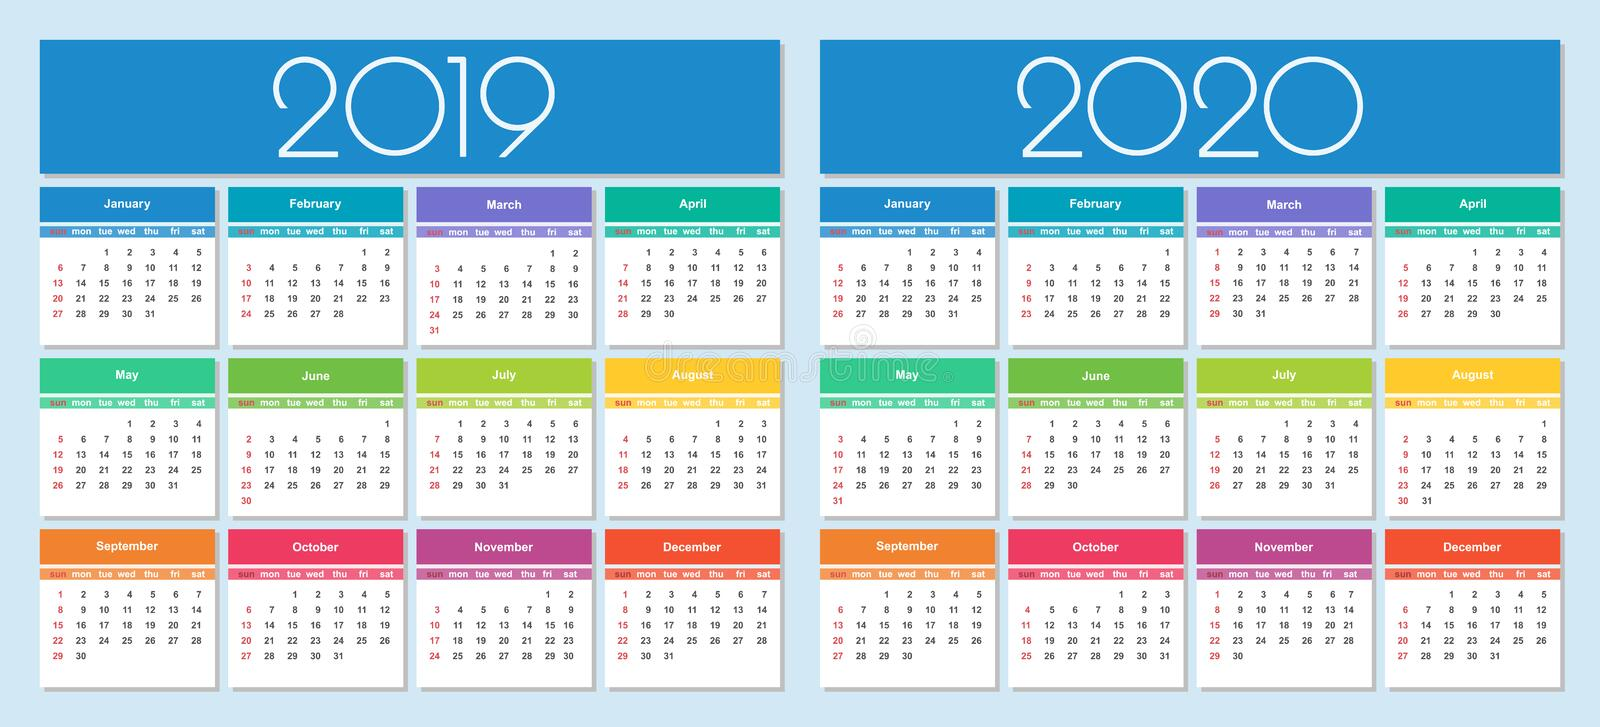 Calendar 2019 and 2020 year royalty free illustration